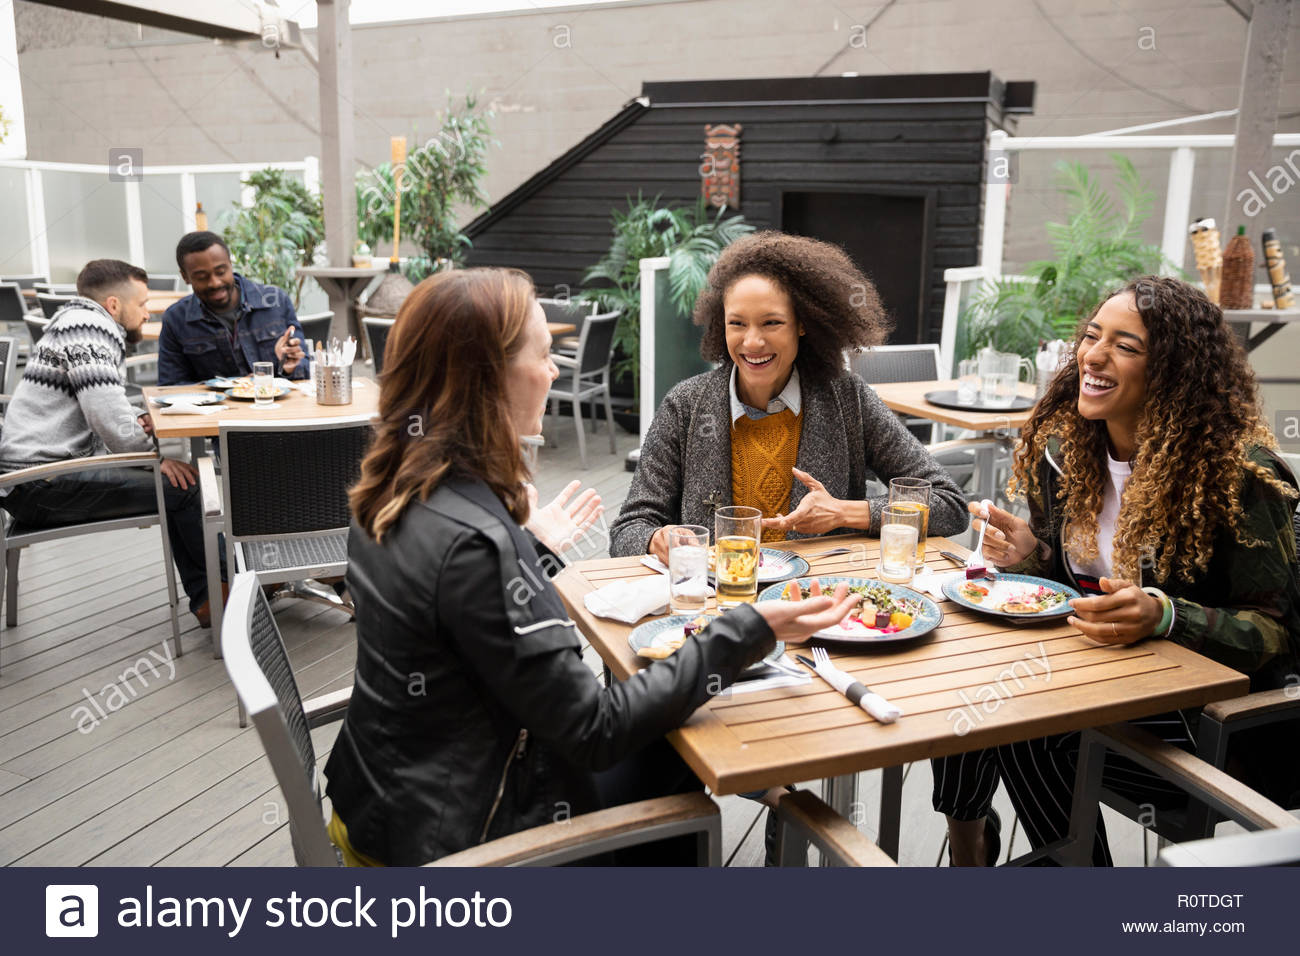 Women friends enjoying lunch on cafe patio Stock Photo